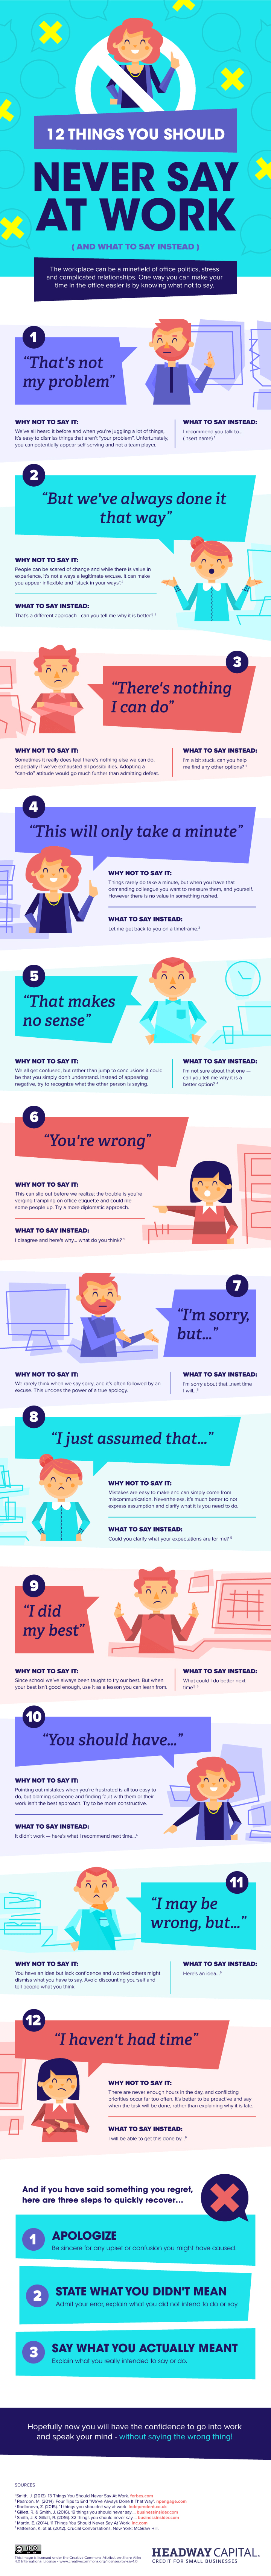 1485538190_never-say-at-work-infographic